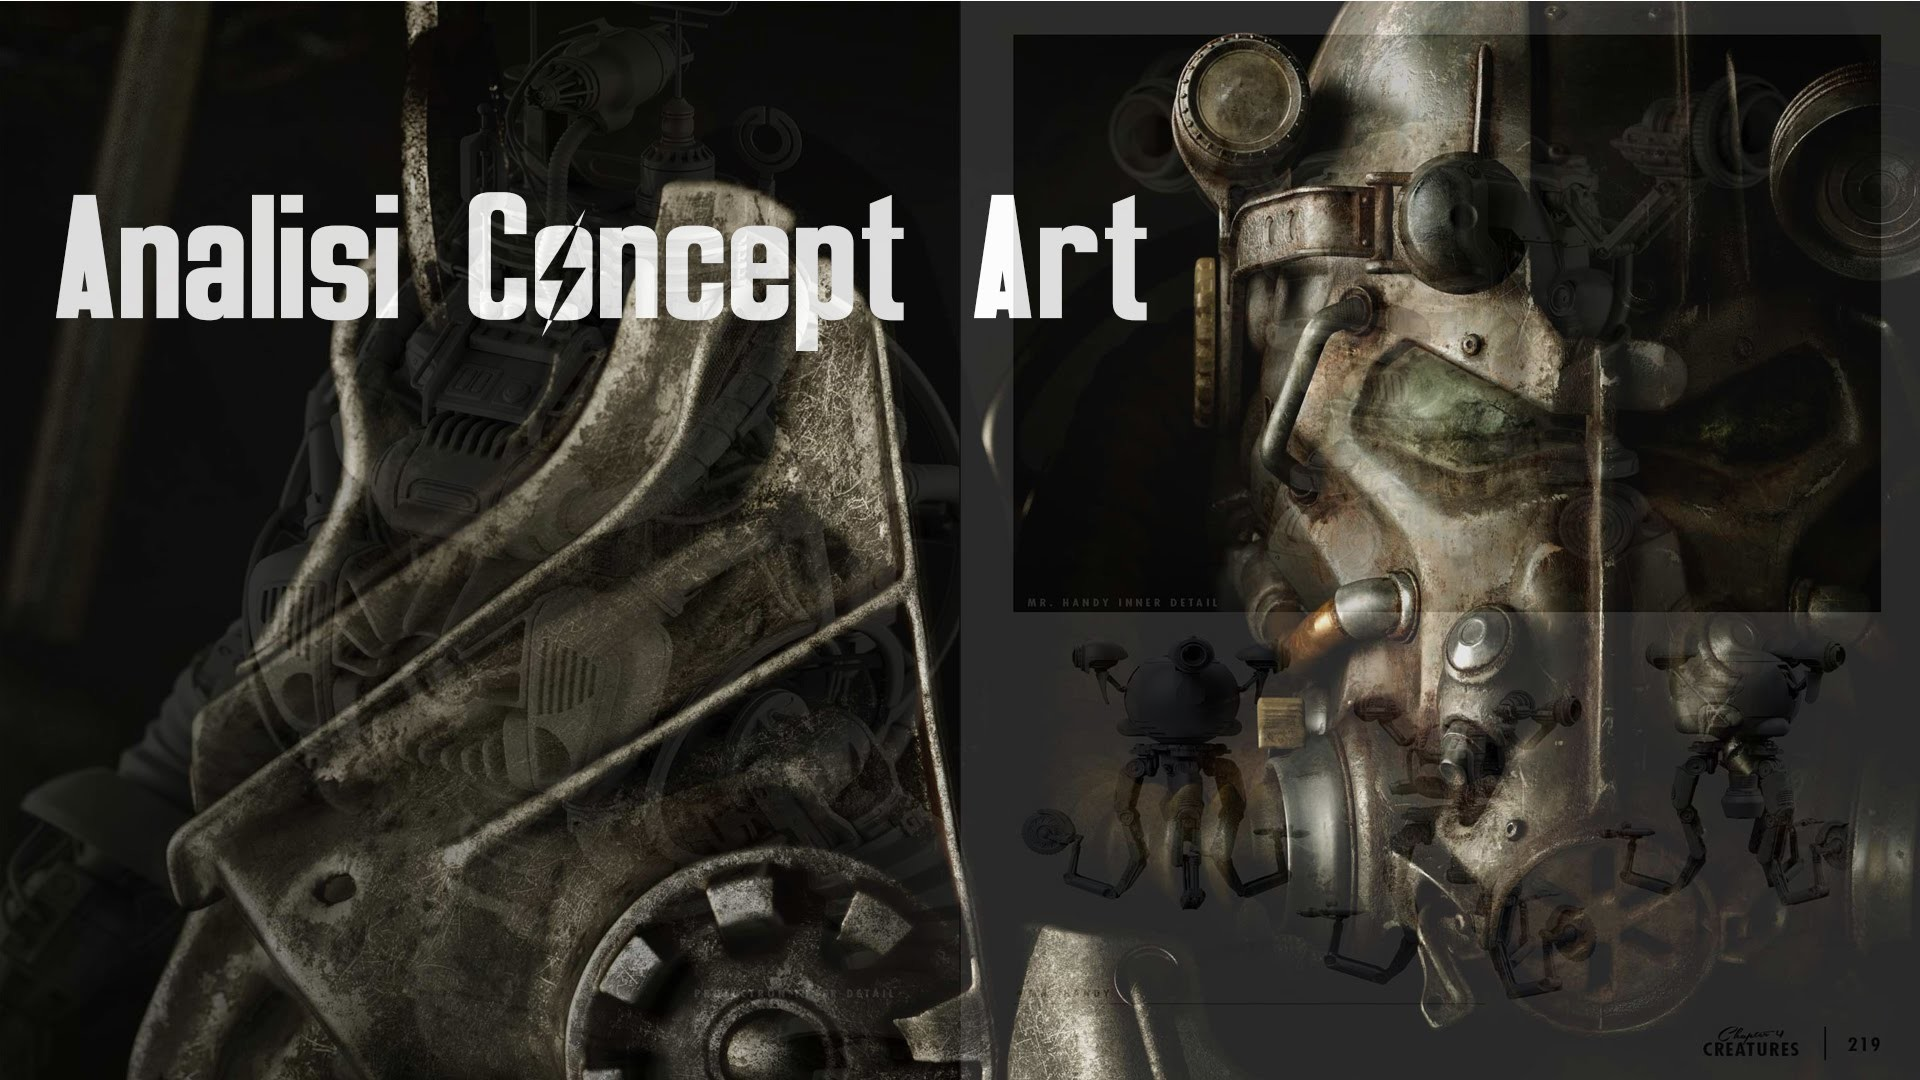 Analisi Concept Art Fallout 4